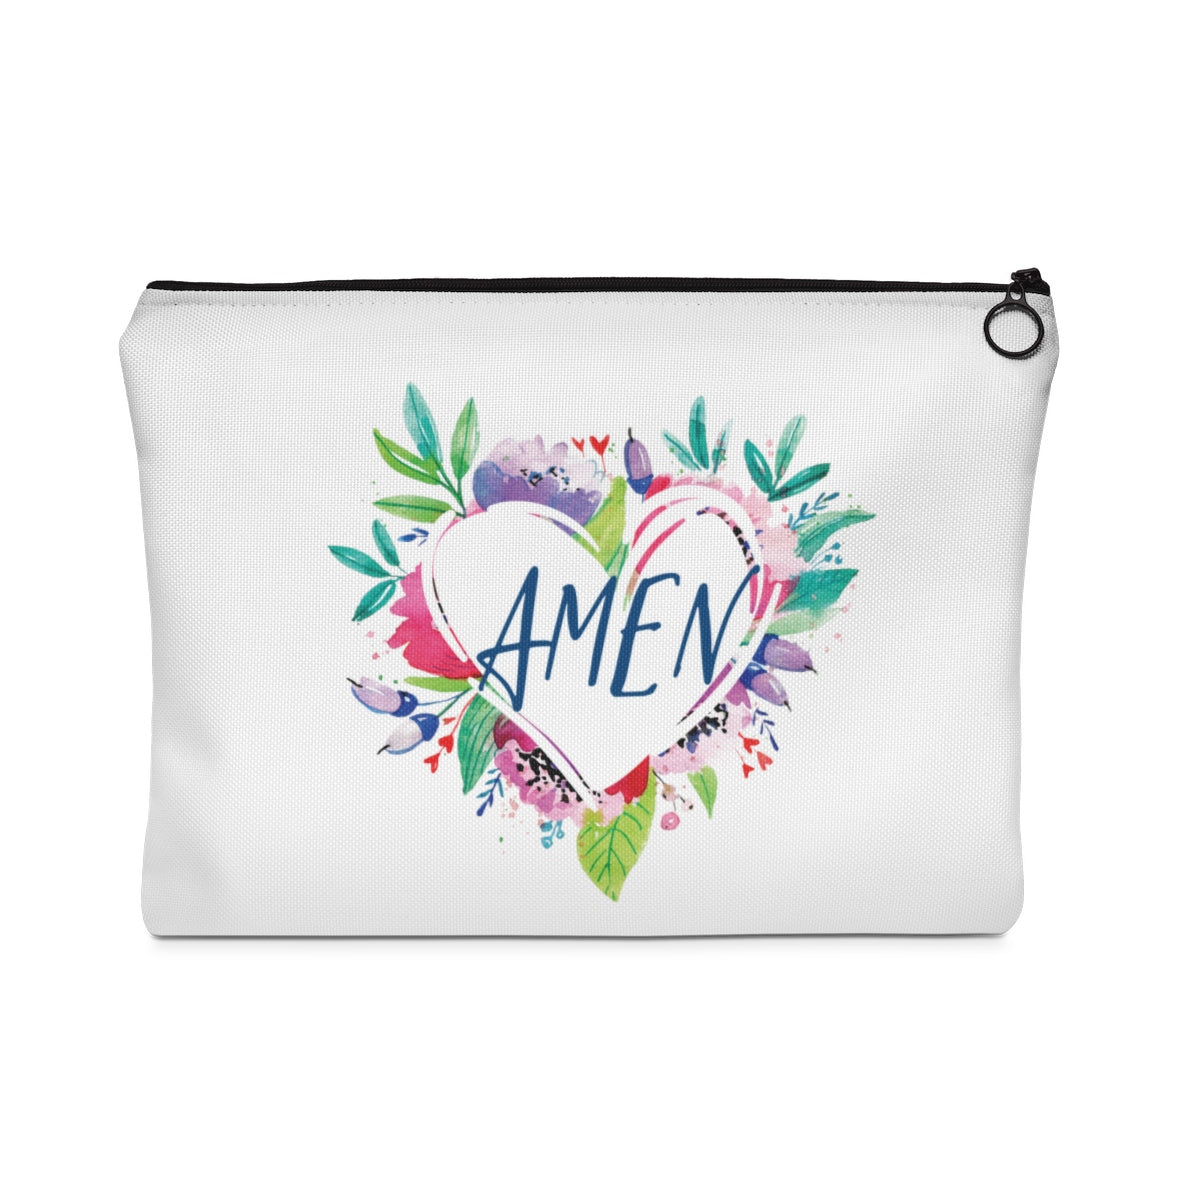 Amen Carry All Pouch - Flat